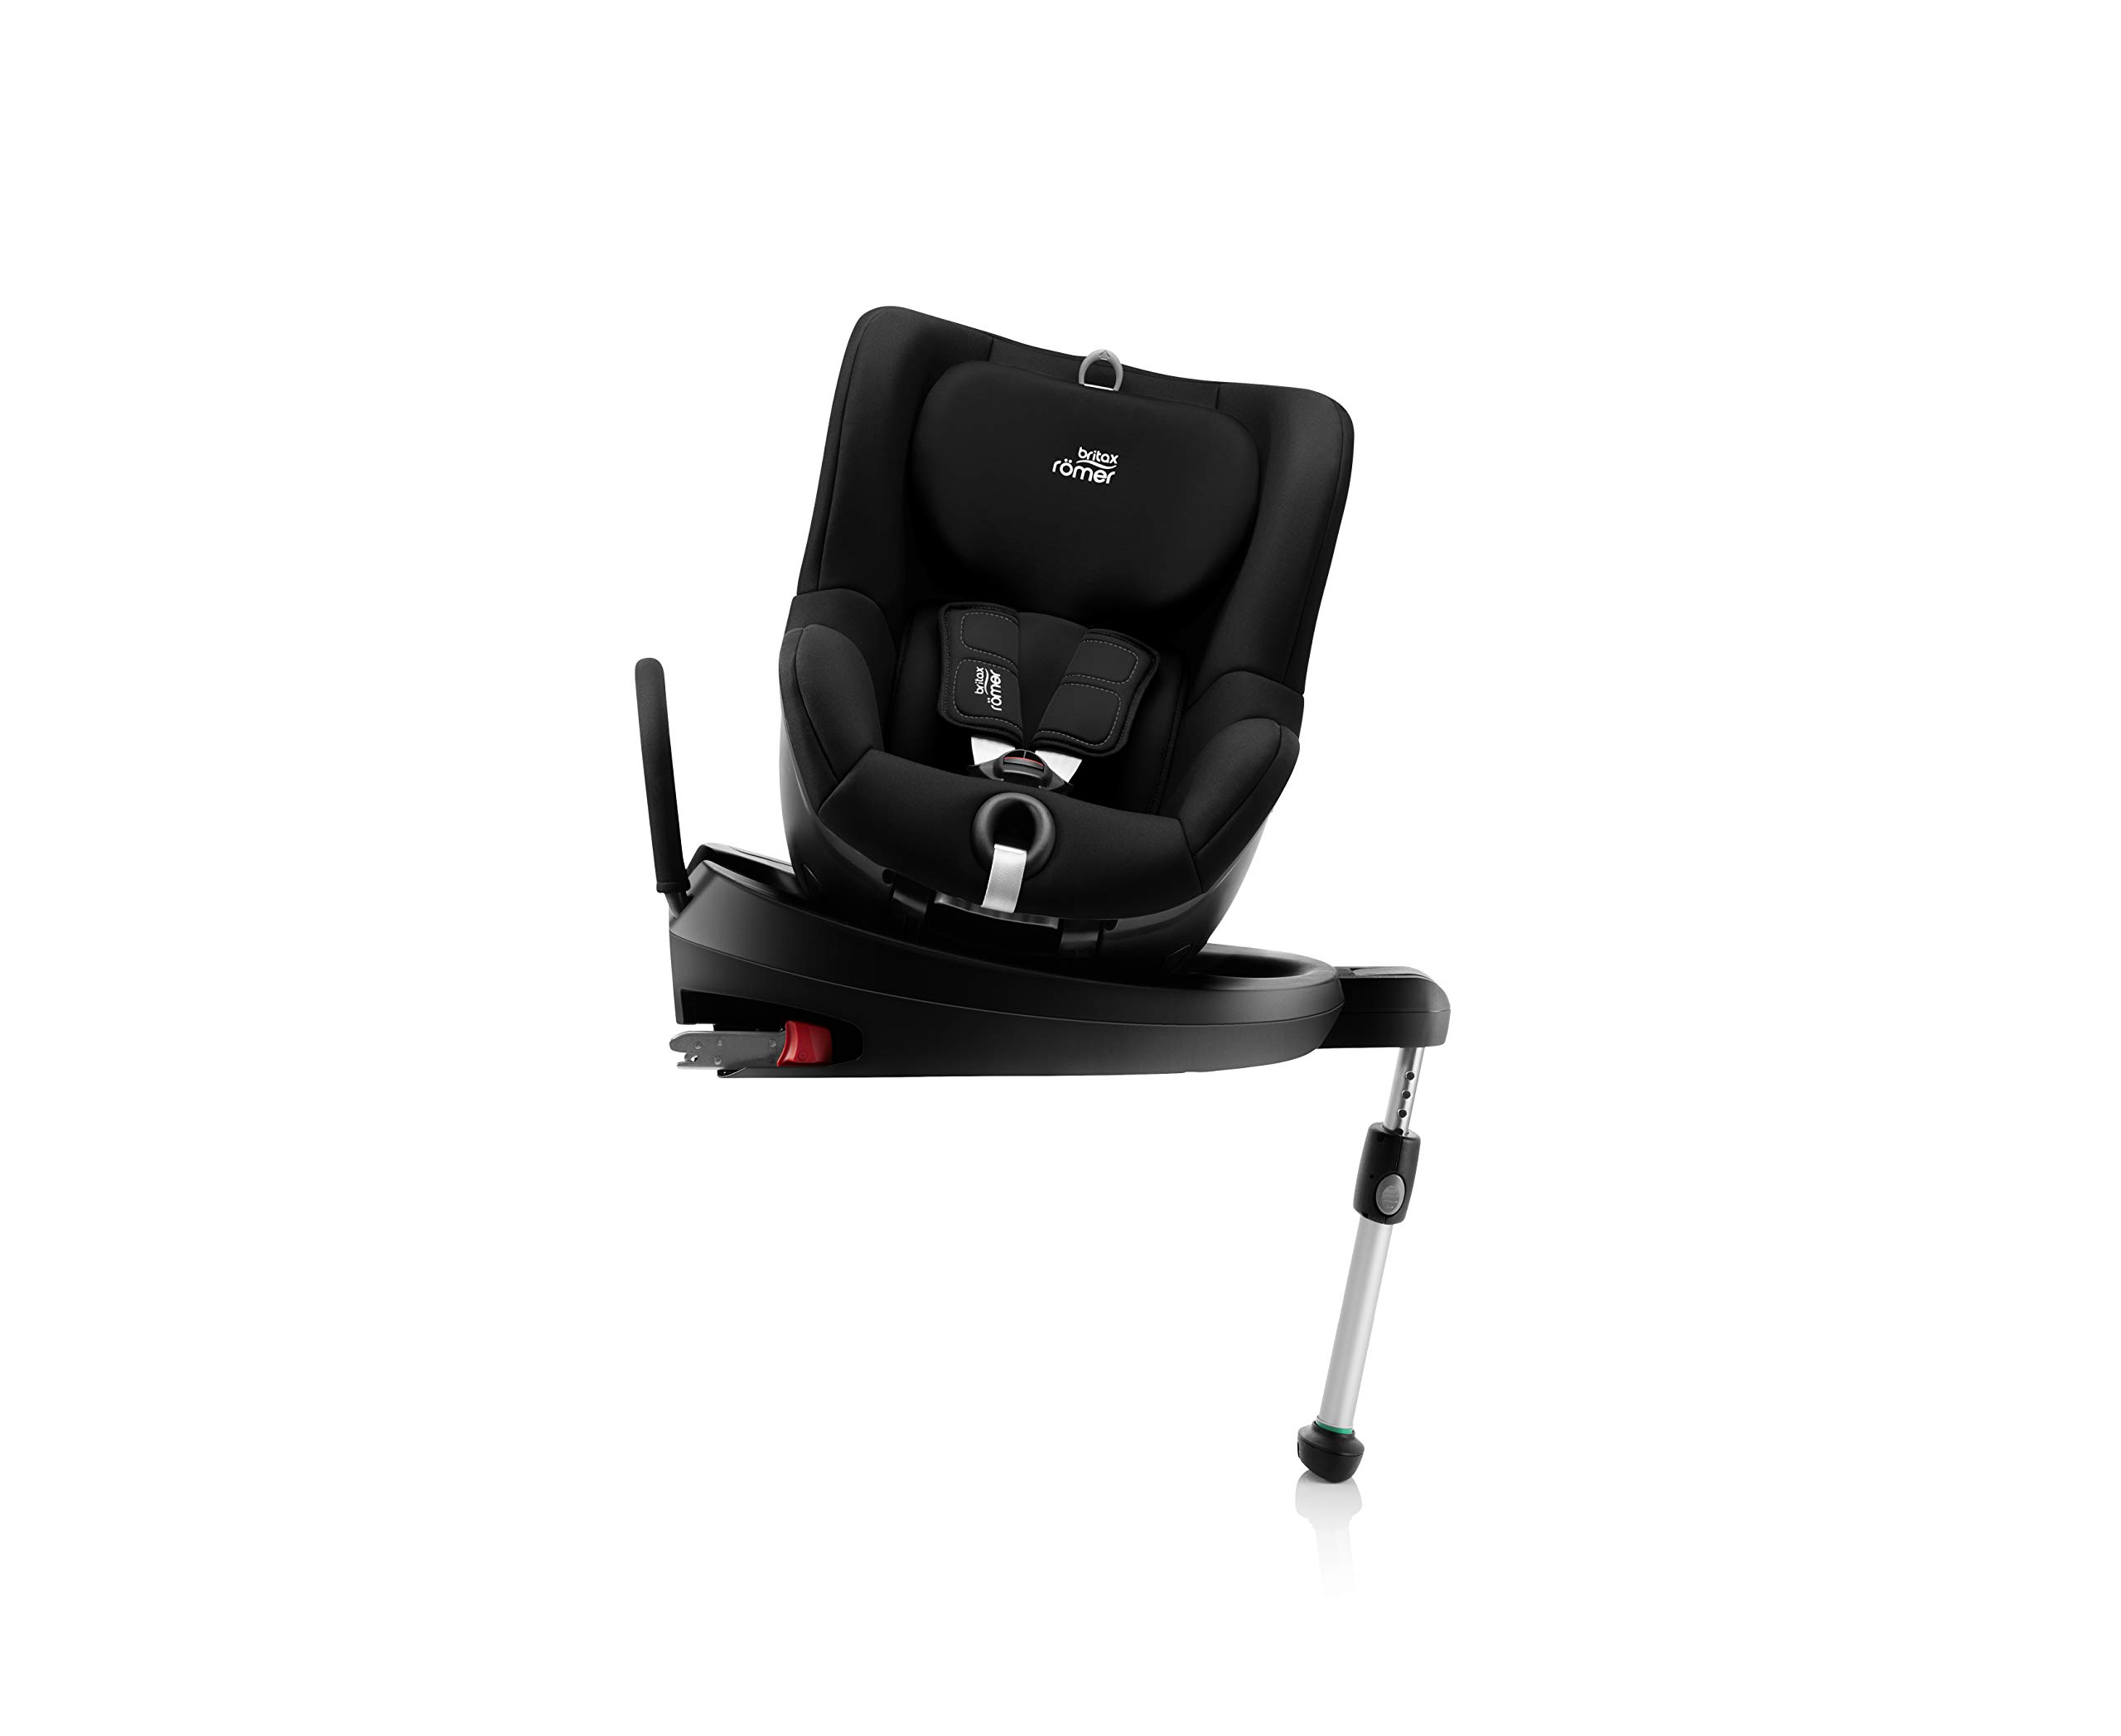 Britax Römer DUALFIX² R Group 0+1 (Birth-18 kg) Car Seat, Cosmos Black Britax Römer Intuitive 360° rotation for rearward and forward facing usage Easy entry with 90 degree rotation to the open door for easy placement of the child Extended rearward facing travel with more leg space thanks to shorter rebound bar 7